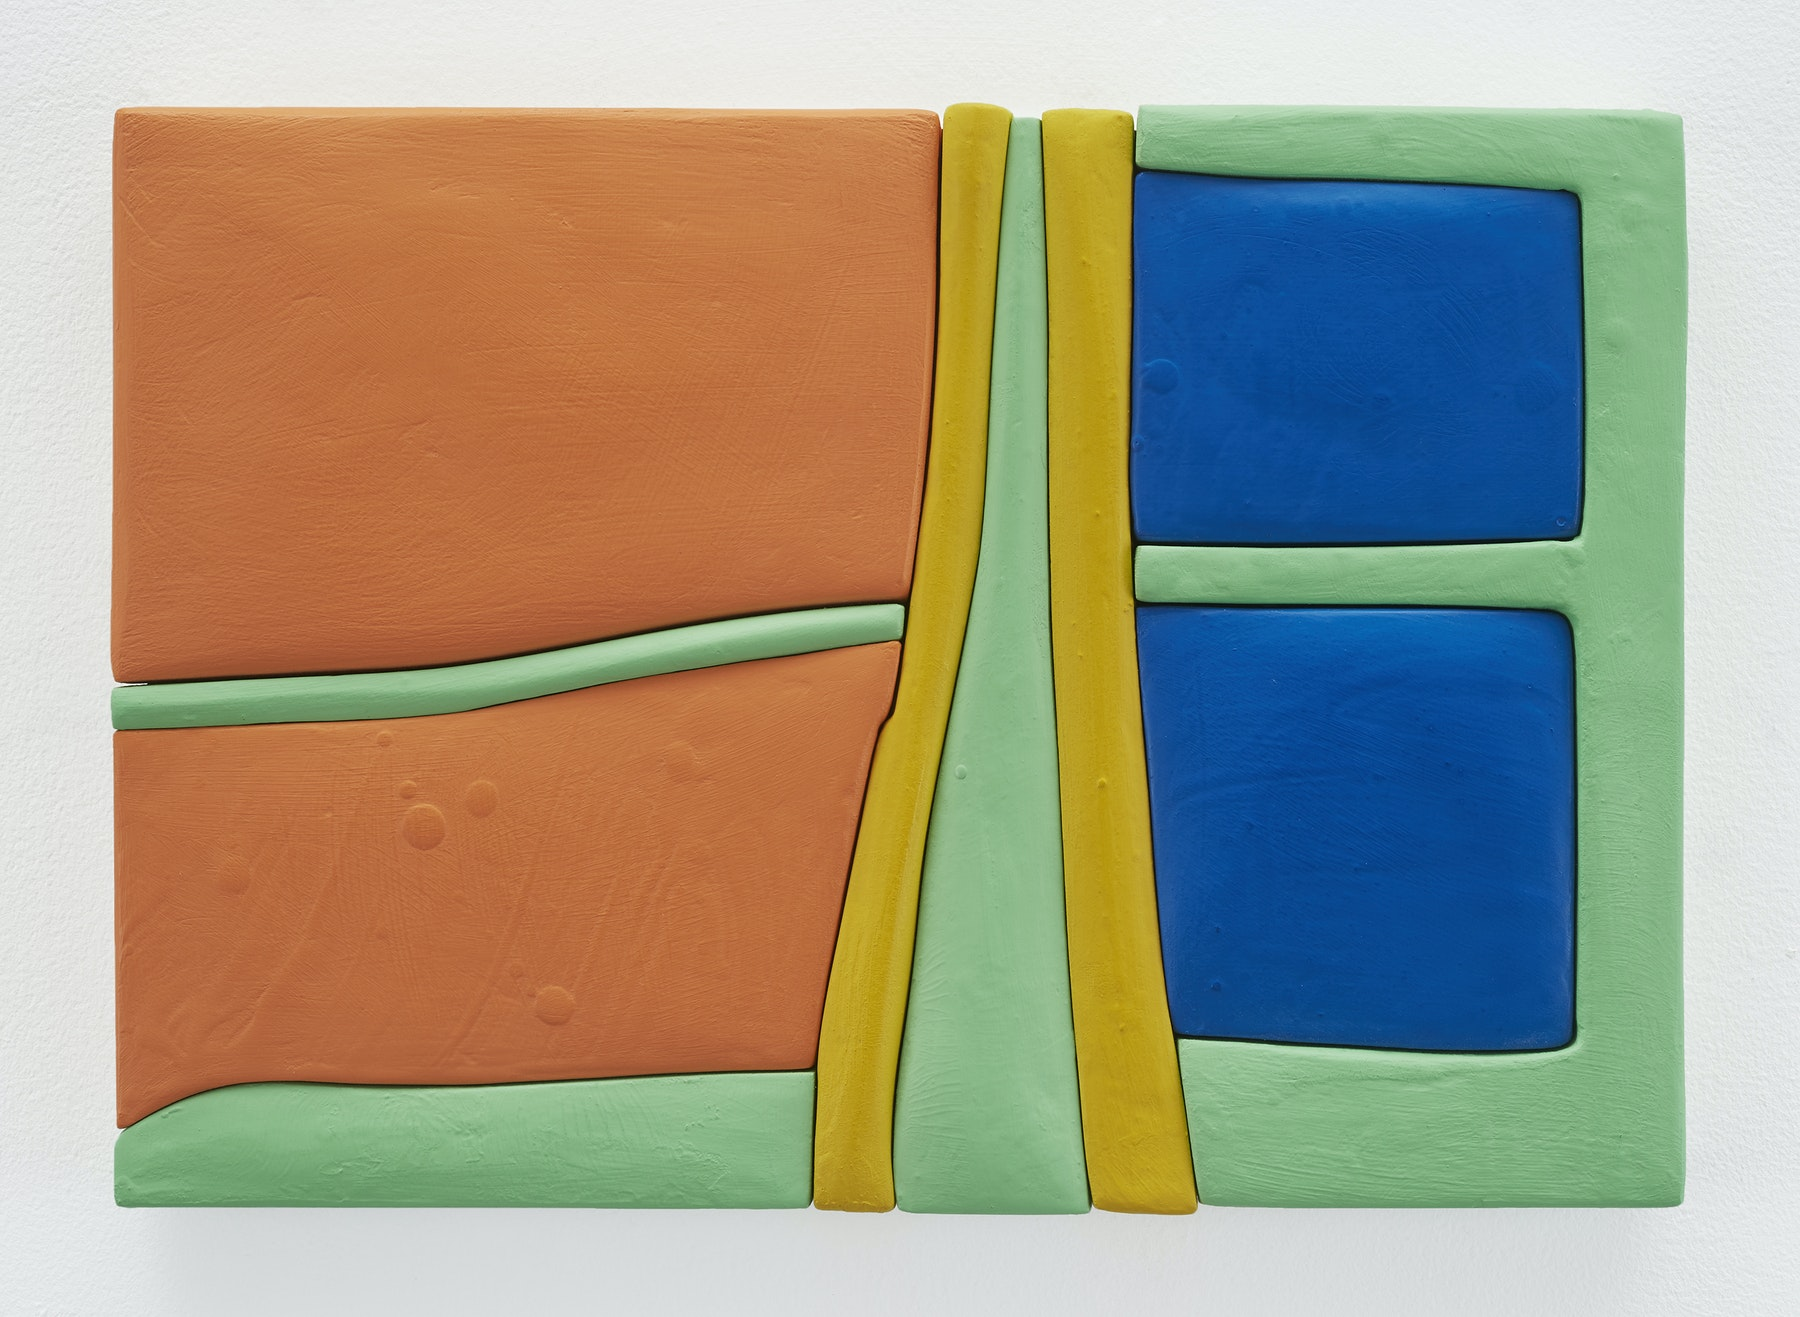 "Sadie Benning ""Untitled 11x16 (QQ),"" 2019 Wood, aqua resin, casein, and acrylic gouache 11 x 16"" [HxW] (27.94 x 40.64 cm) Inventory #BEN844 Courtesy of the artist and Vielmetter Los Angeles Photocredit: Chris Austin"